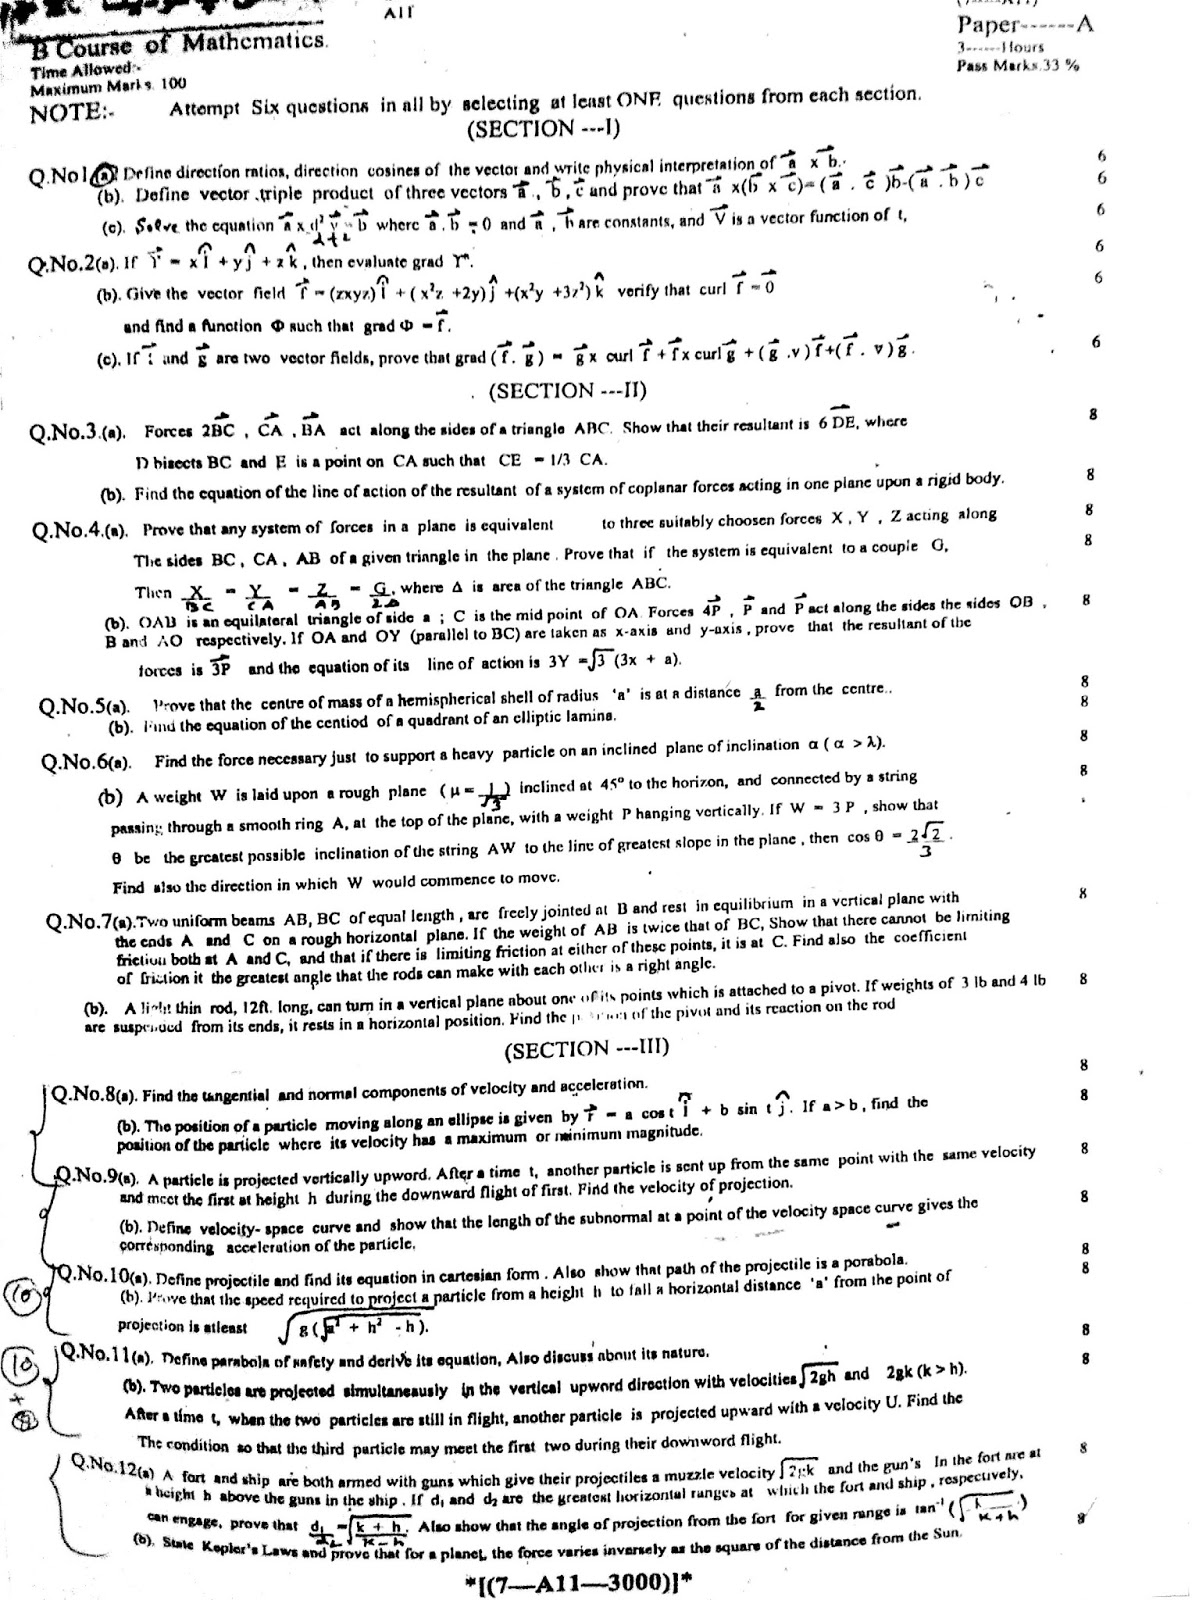 past papers bsc math punjab university,punjab university past papers bsc 2014,bsc math past papers sargodha university,bsc math paper 2014,punjab university old papers bsc math 2013,bsc mathematics paper pattern,past papers of bsc general maths punjab university,bsc math general paper a punjab university 2013,bsc part 1 syllabus punjab university 2016,punjab university syllabus for bsc general maths,bsc syllabus punjab university 2016,punjab university paper pattern for b.s.c 2016,ba syllabus punjab university 2016,bsc syllabus punjab university 2015,punjab university ba subjects combination for private students,ba part 1 syllabus punjab university 2016